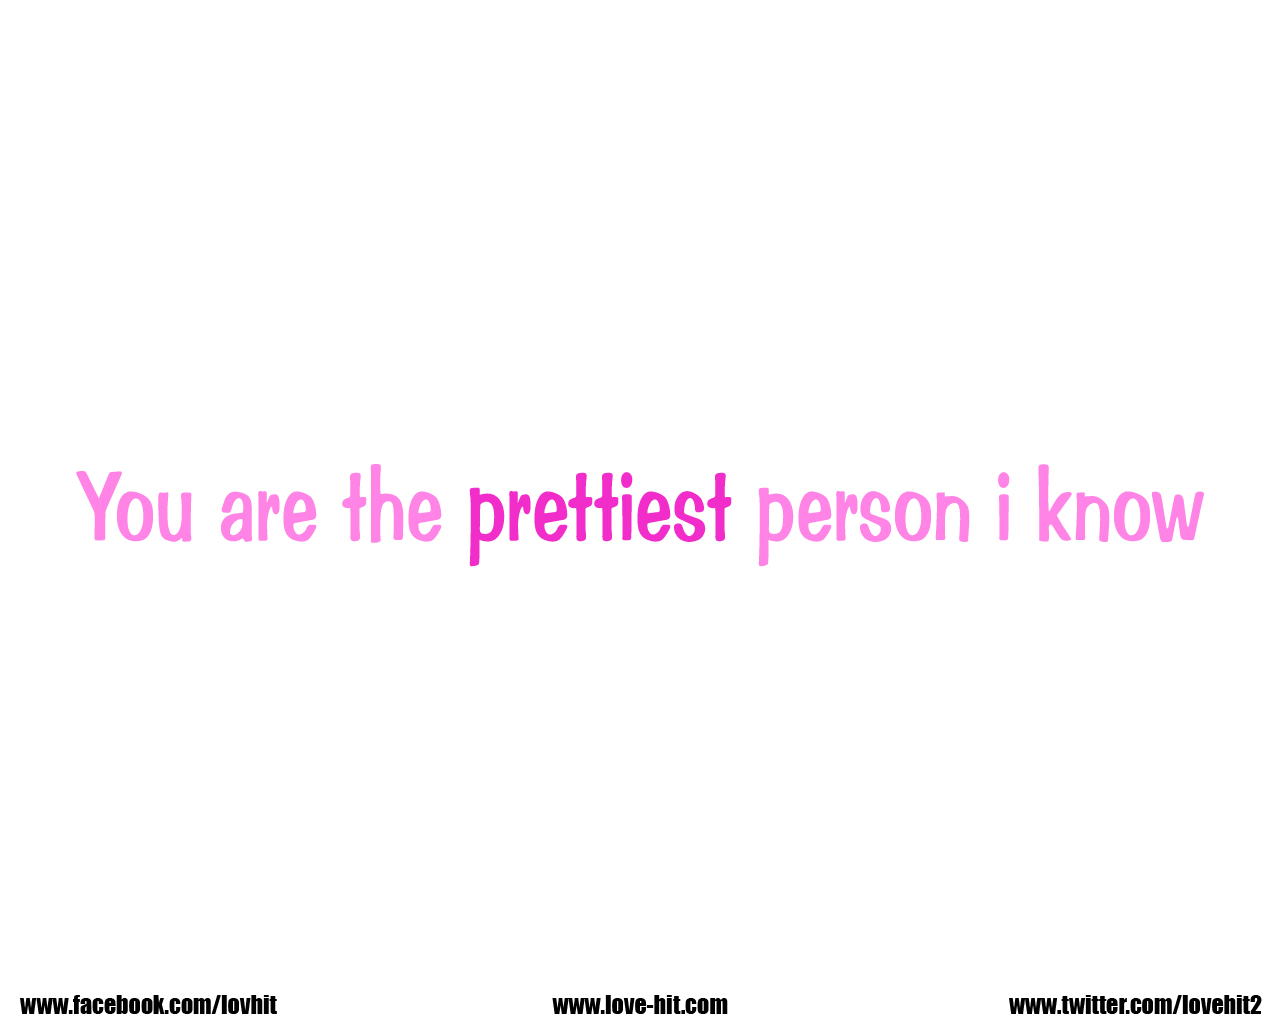 You are the prettiest person i know